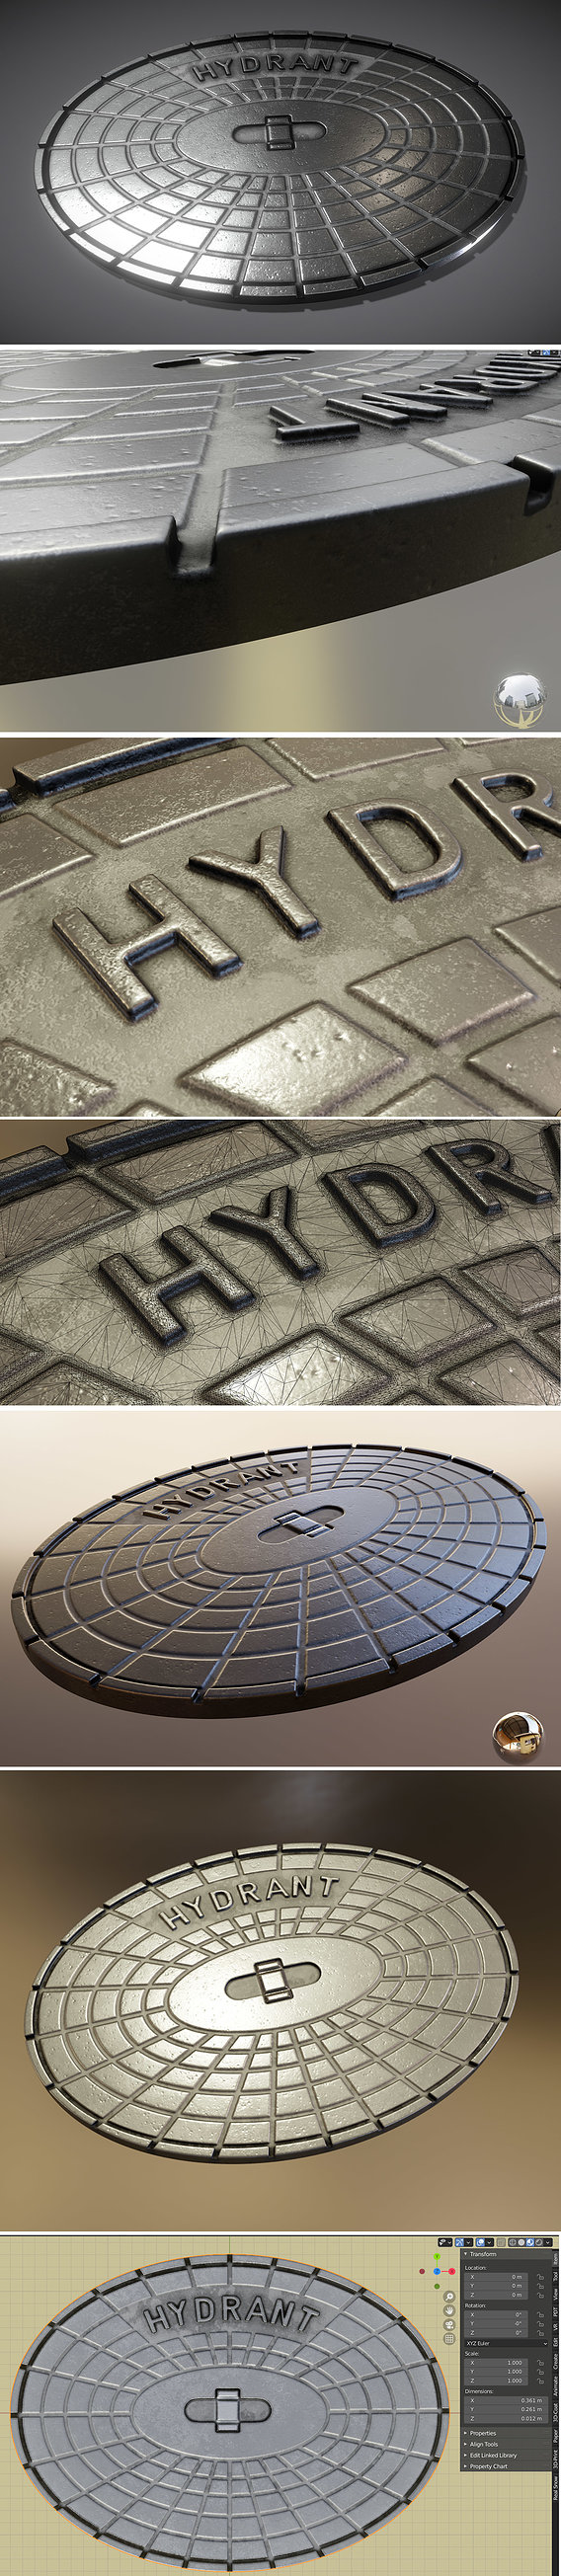 Sewer Cover 2 Hydranten High-Poly (Blender-2.91 Eevee)